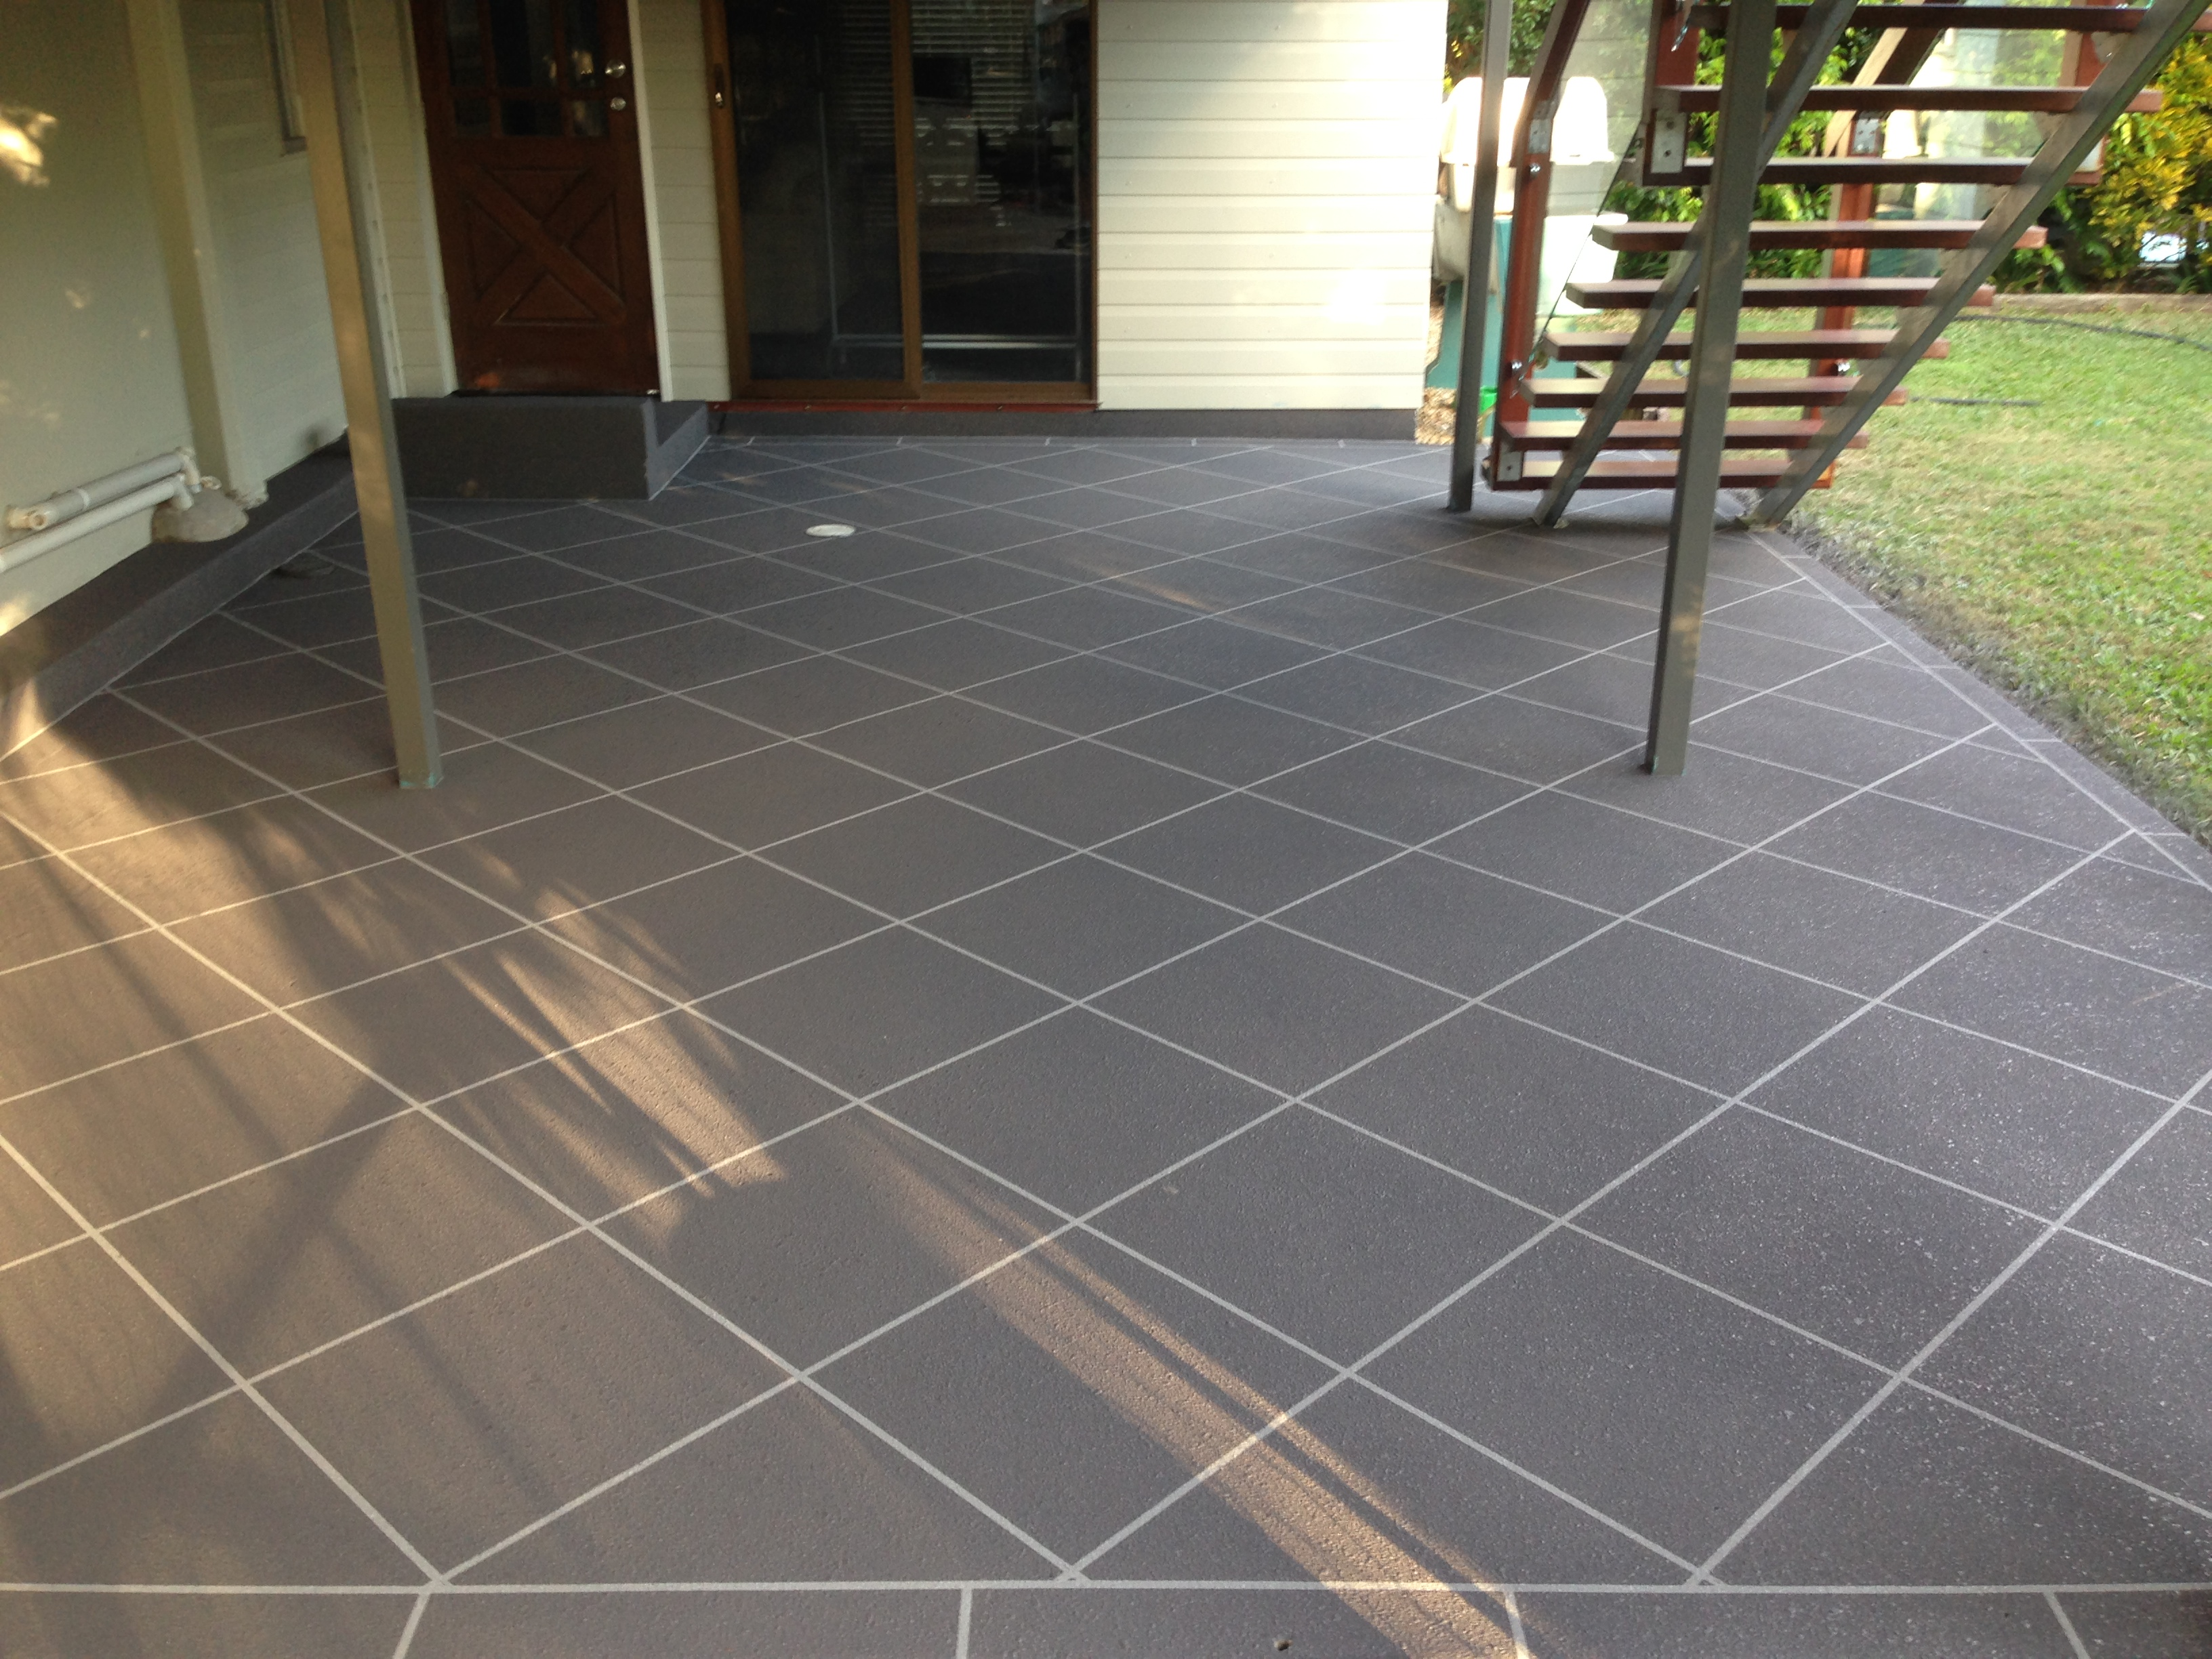 Plain Patio - After Covacrete